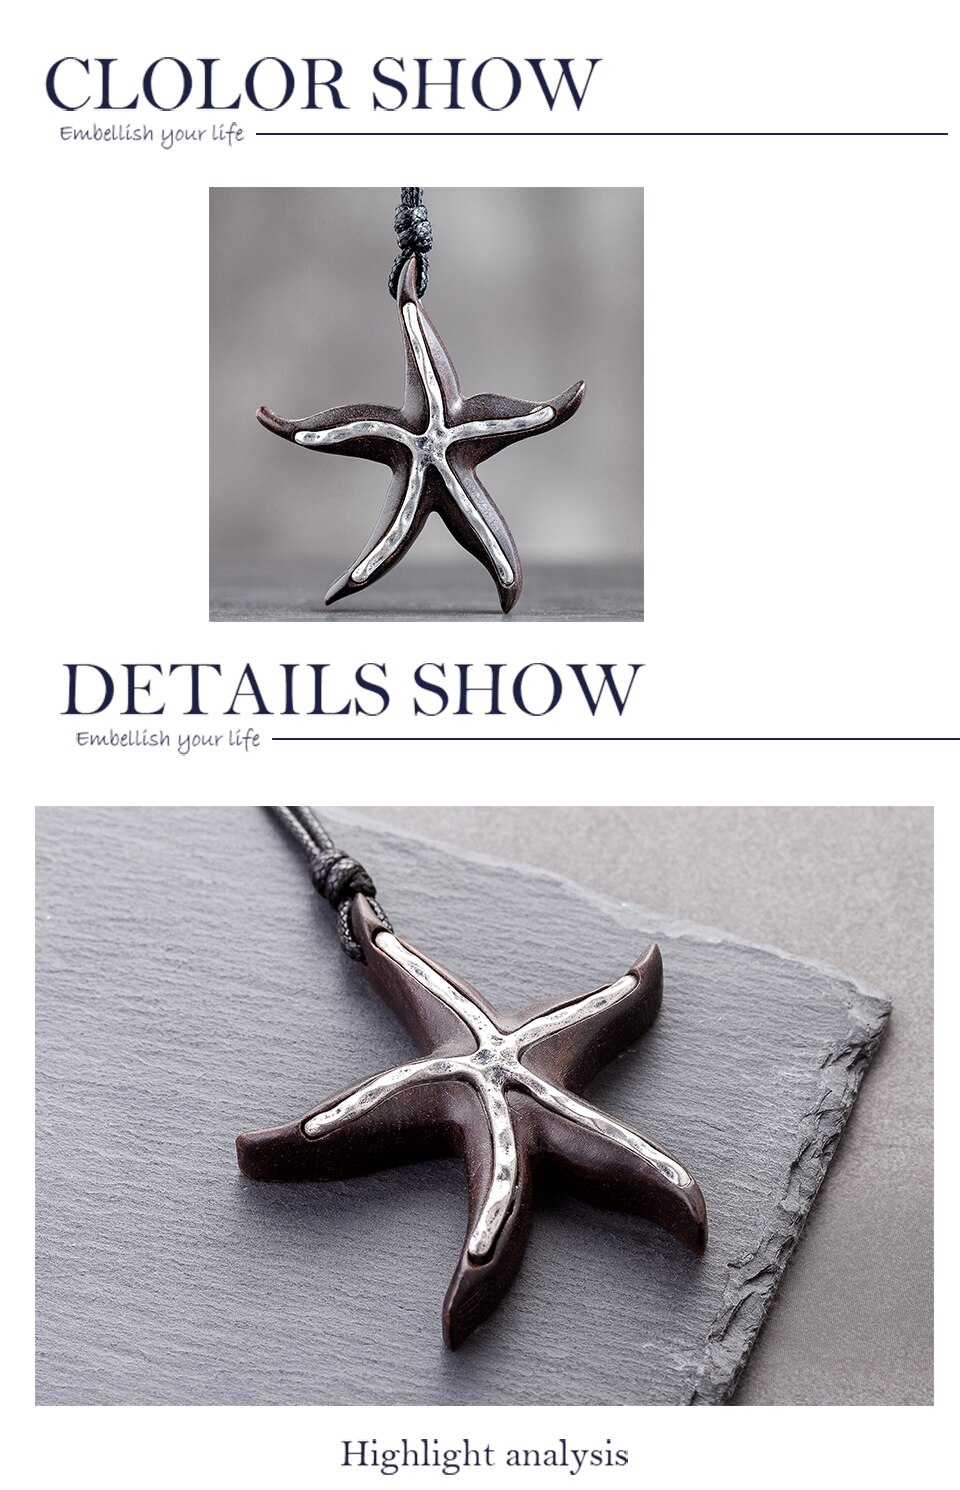 Vintage Jewelry Long Necklace for Women Accessories Neckless Choker Handmade Black Sandalwood Starfish Pendant Hotsale 2020 New